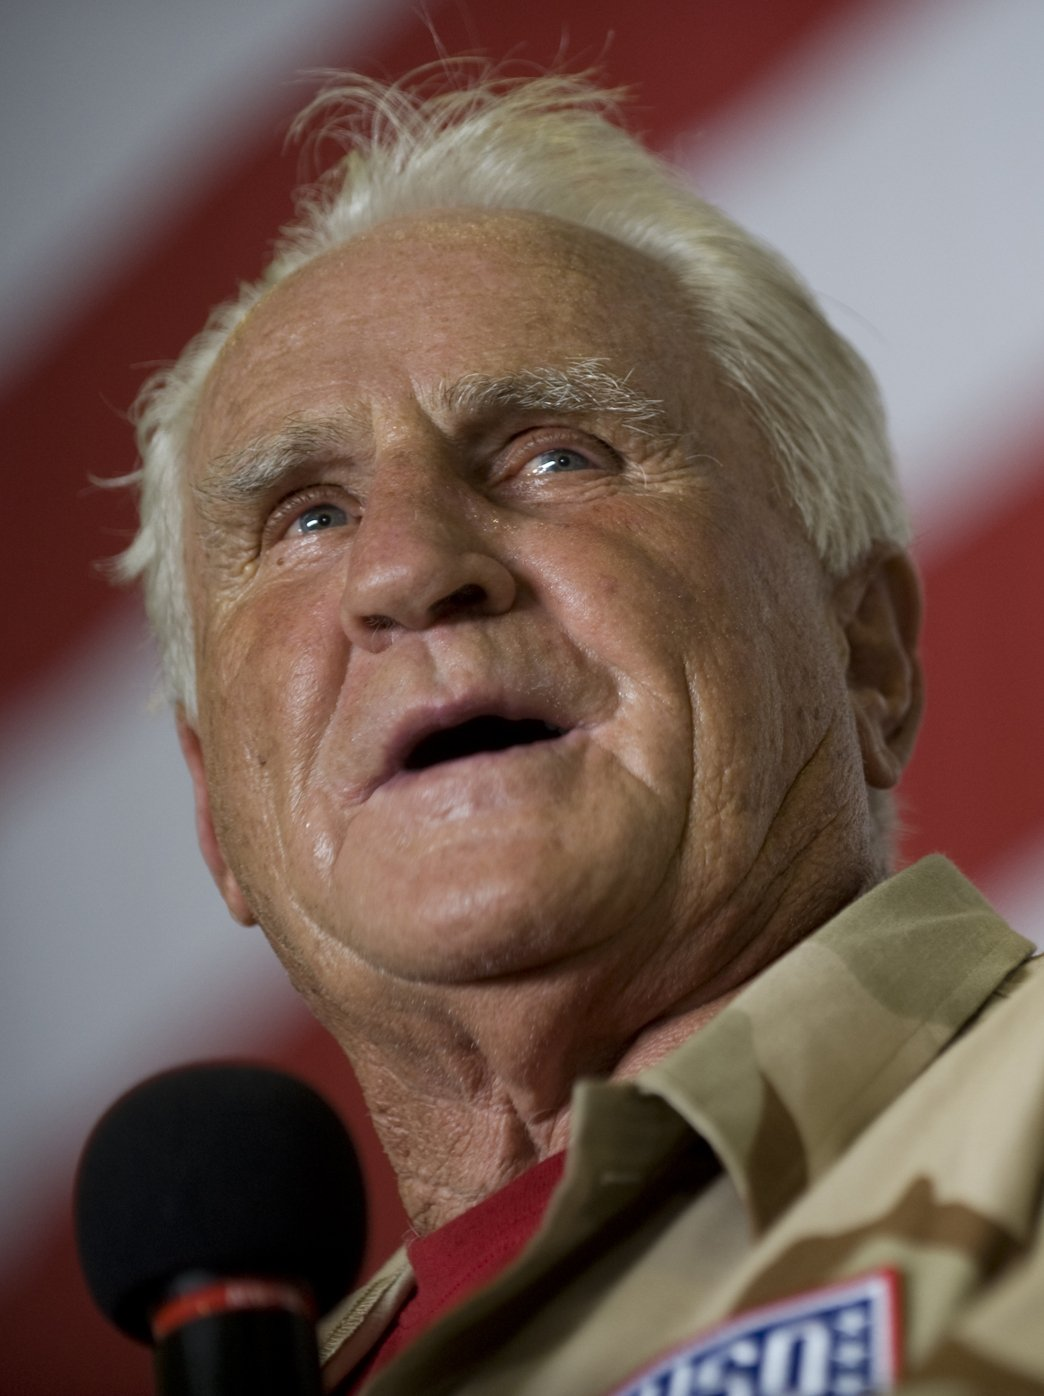 Don Shula addresses the crew of aircraft carrier USS Ronald Reagan (CVN 76), under way in the Gulf of Oman, July 13, 2009 | Photo: GettyImages